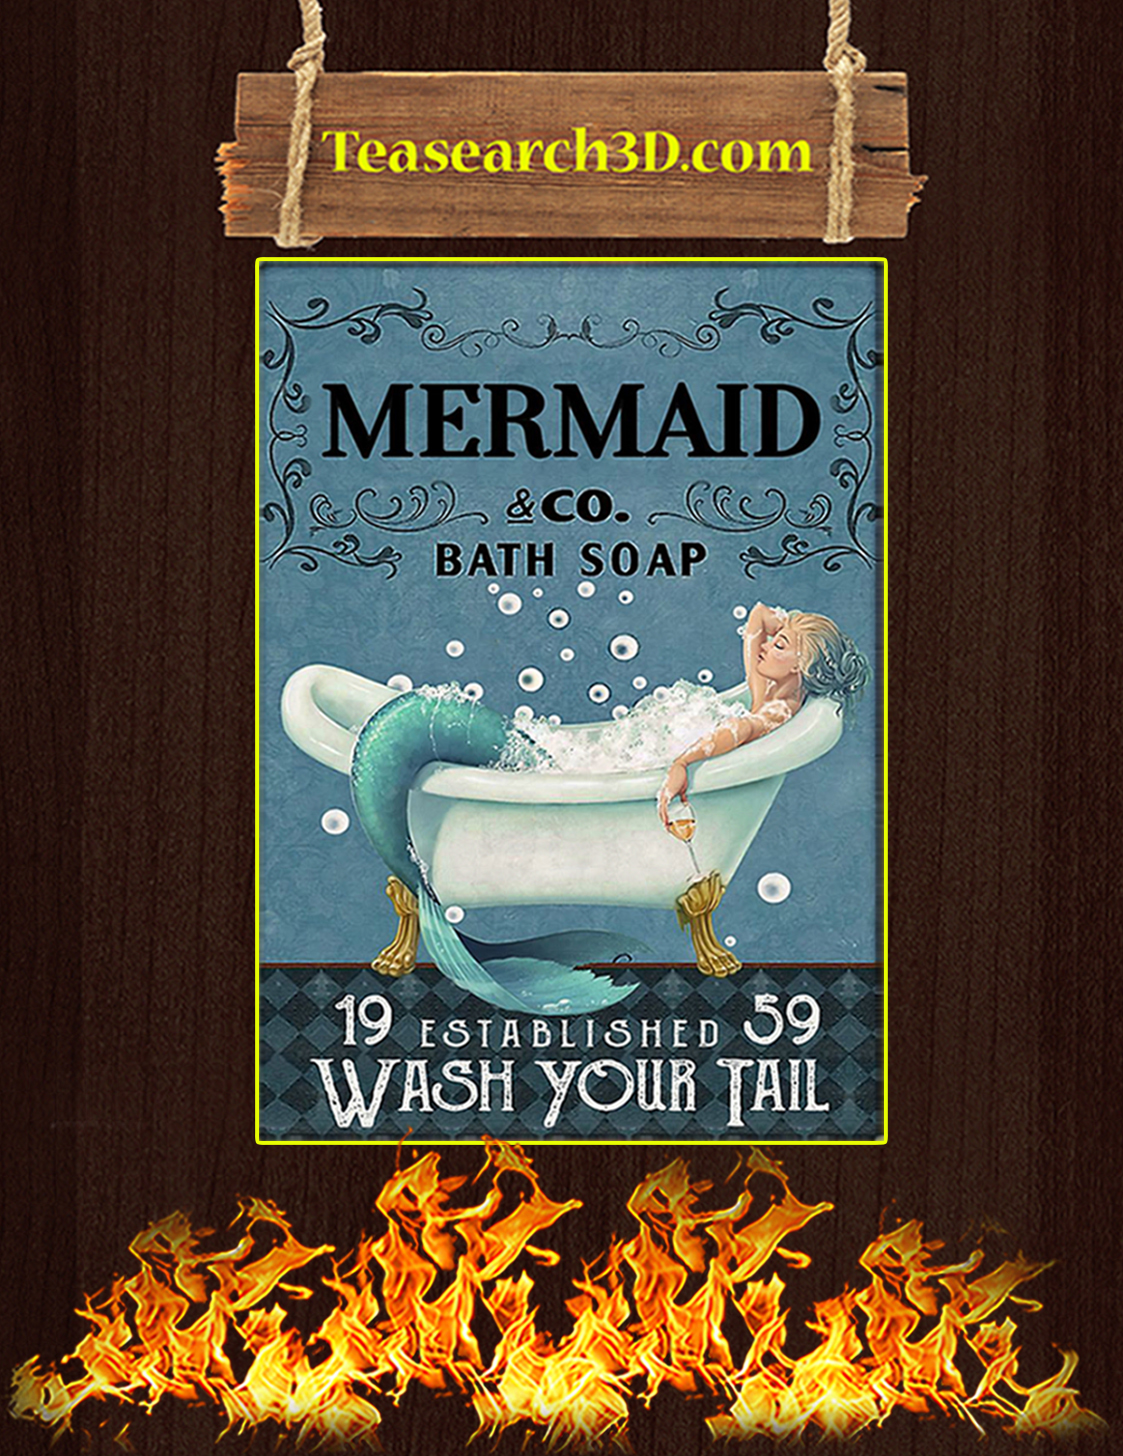 Mermaid co bath soap wash your tail poster A3